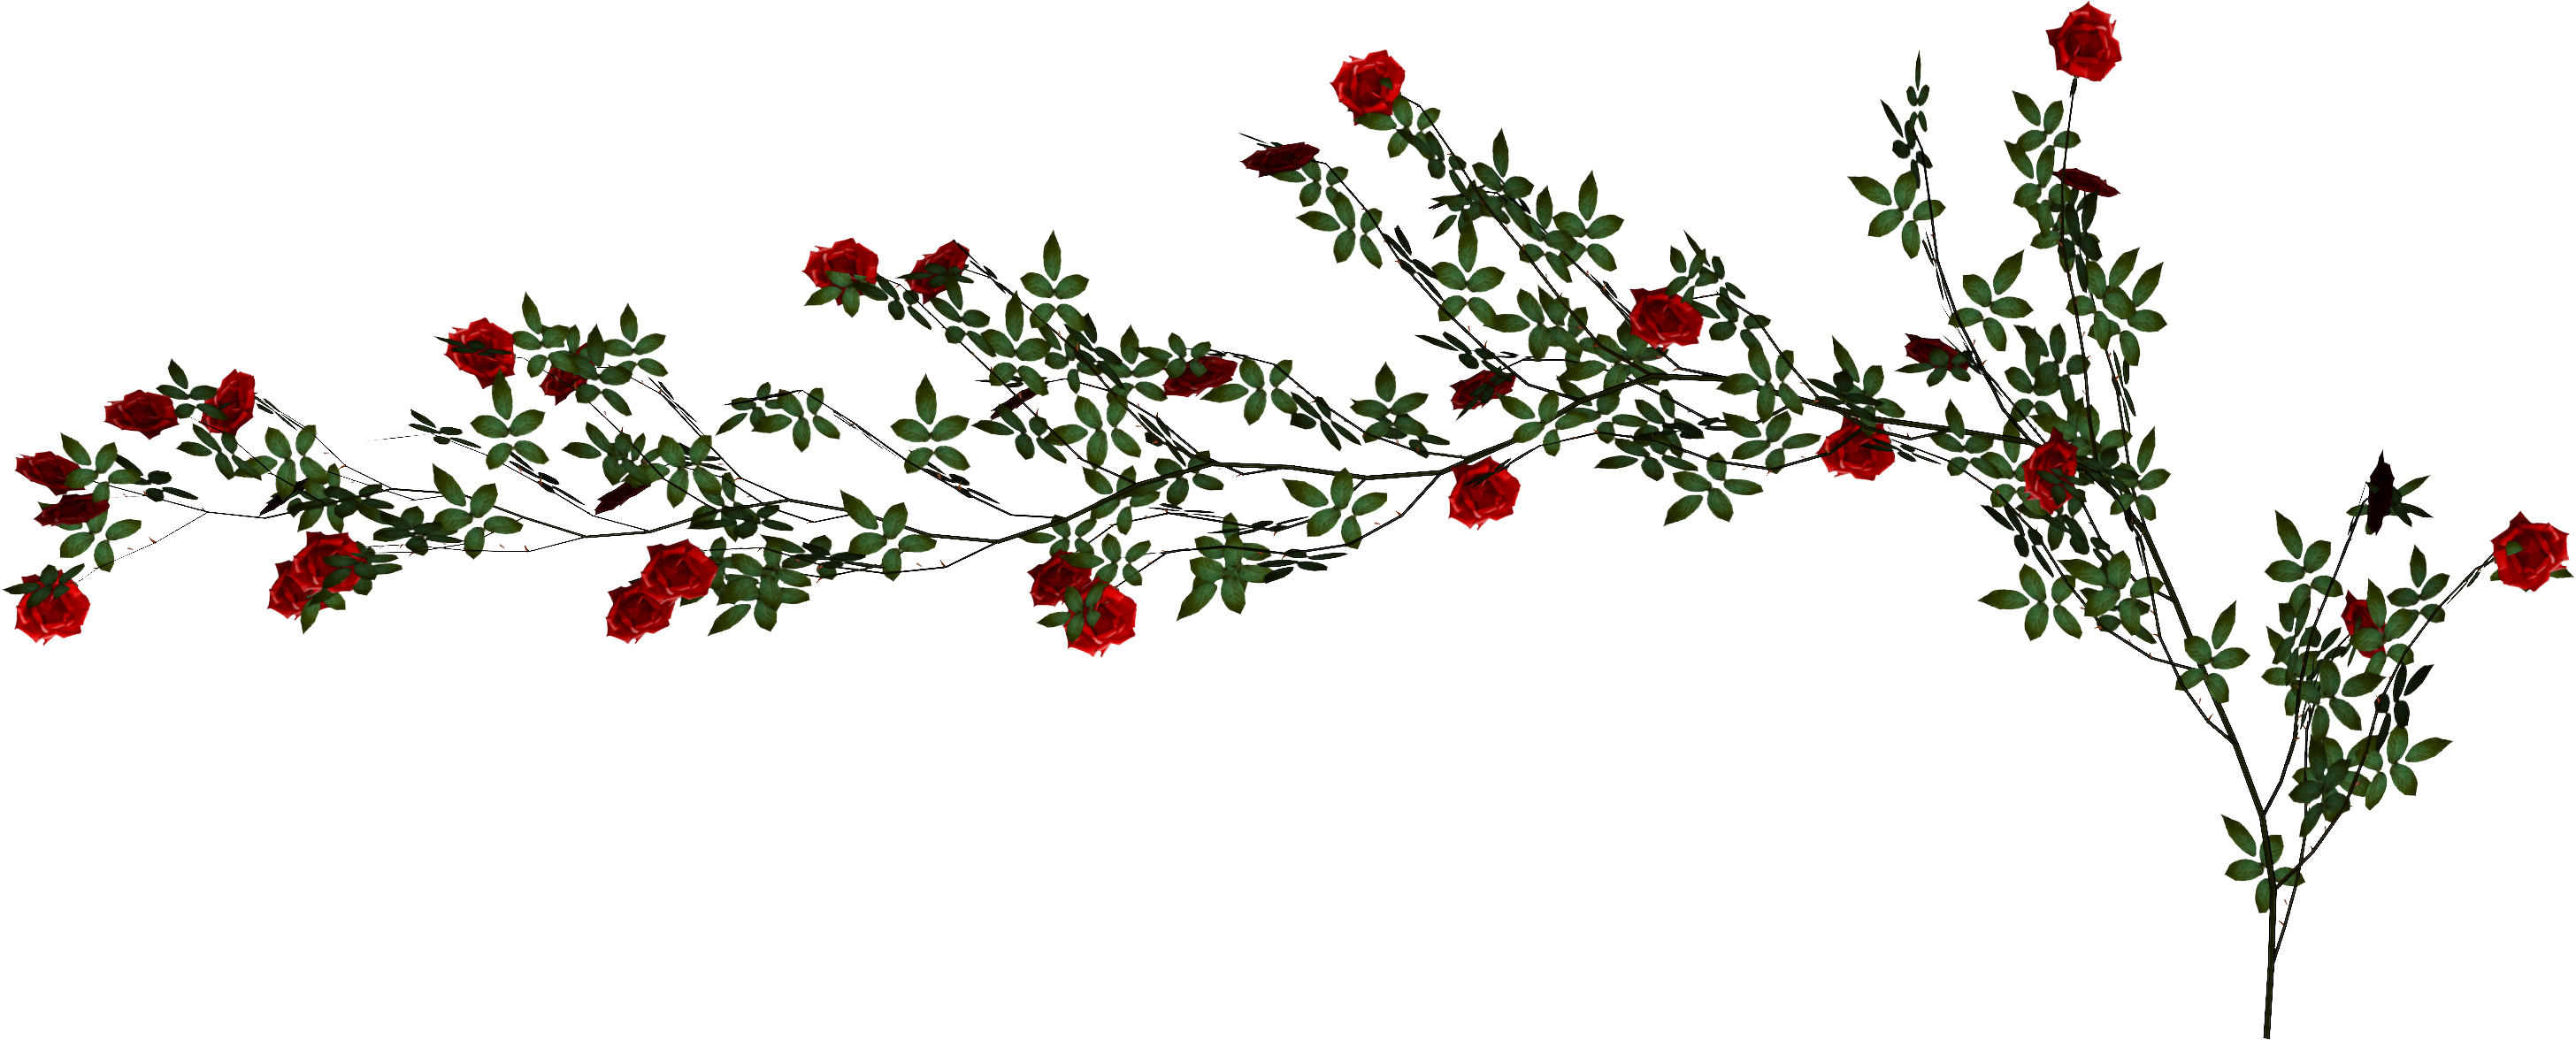 Holly Vine Png & Free Holly Vine.png Transparent Images ...